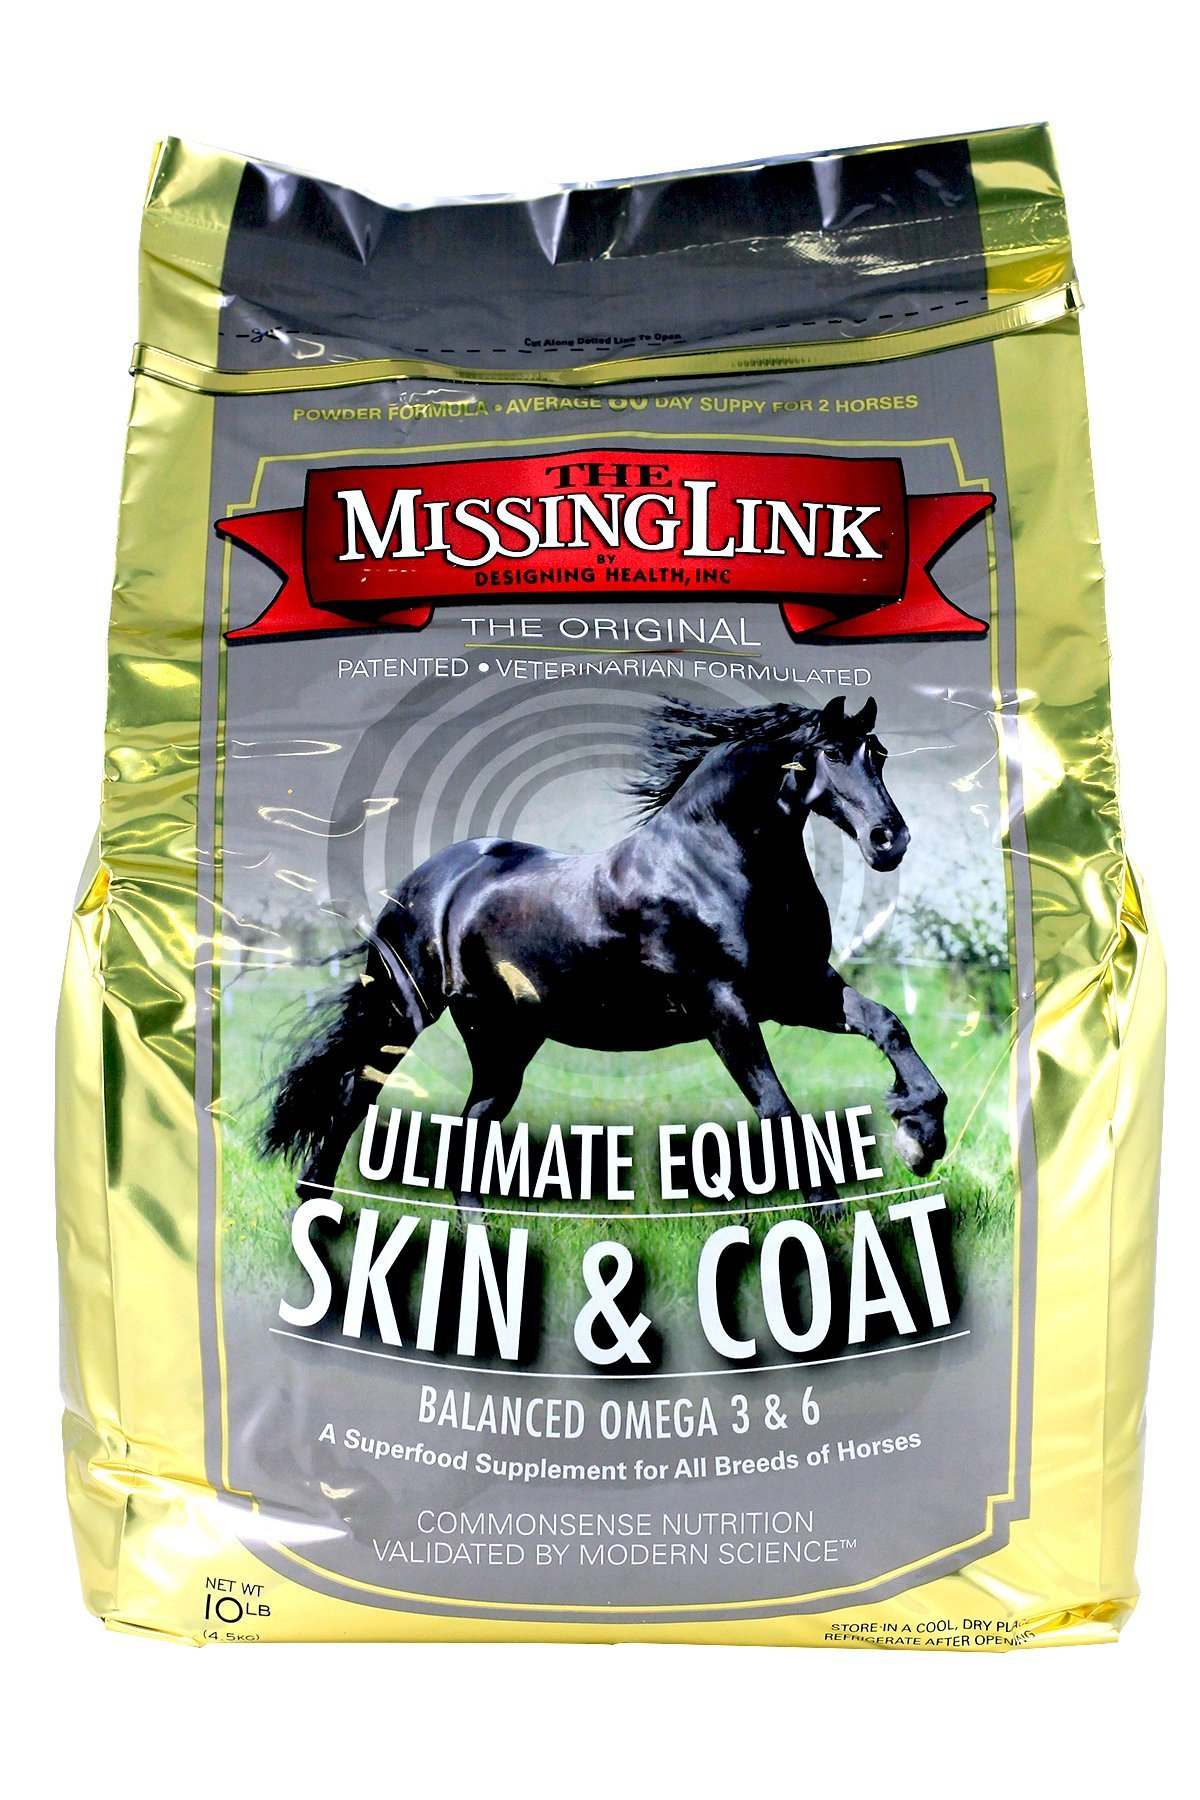 The Missing Link 10-Pound Equine Formula for Horses by The Missing Link